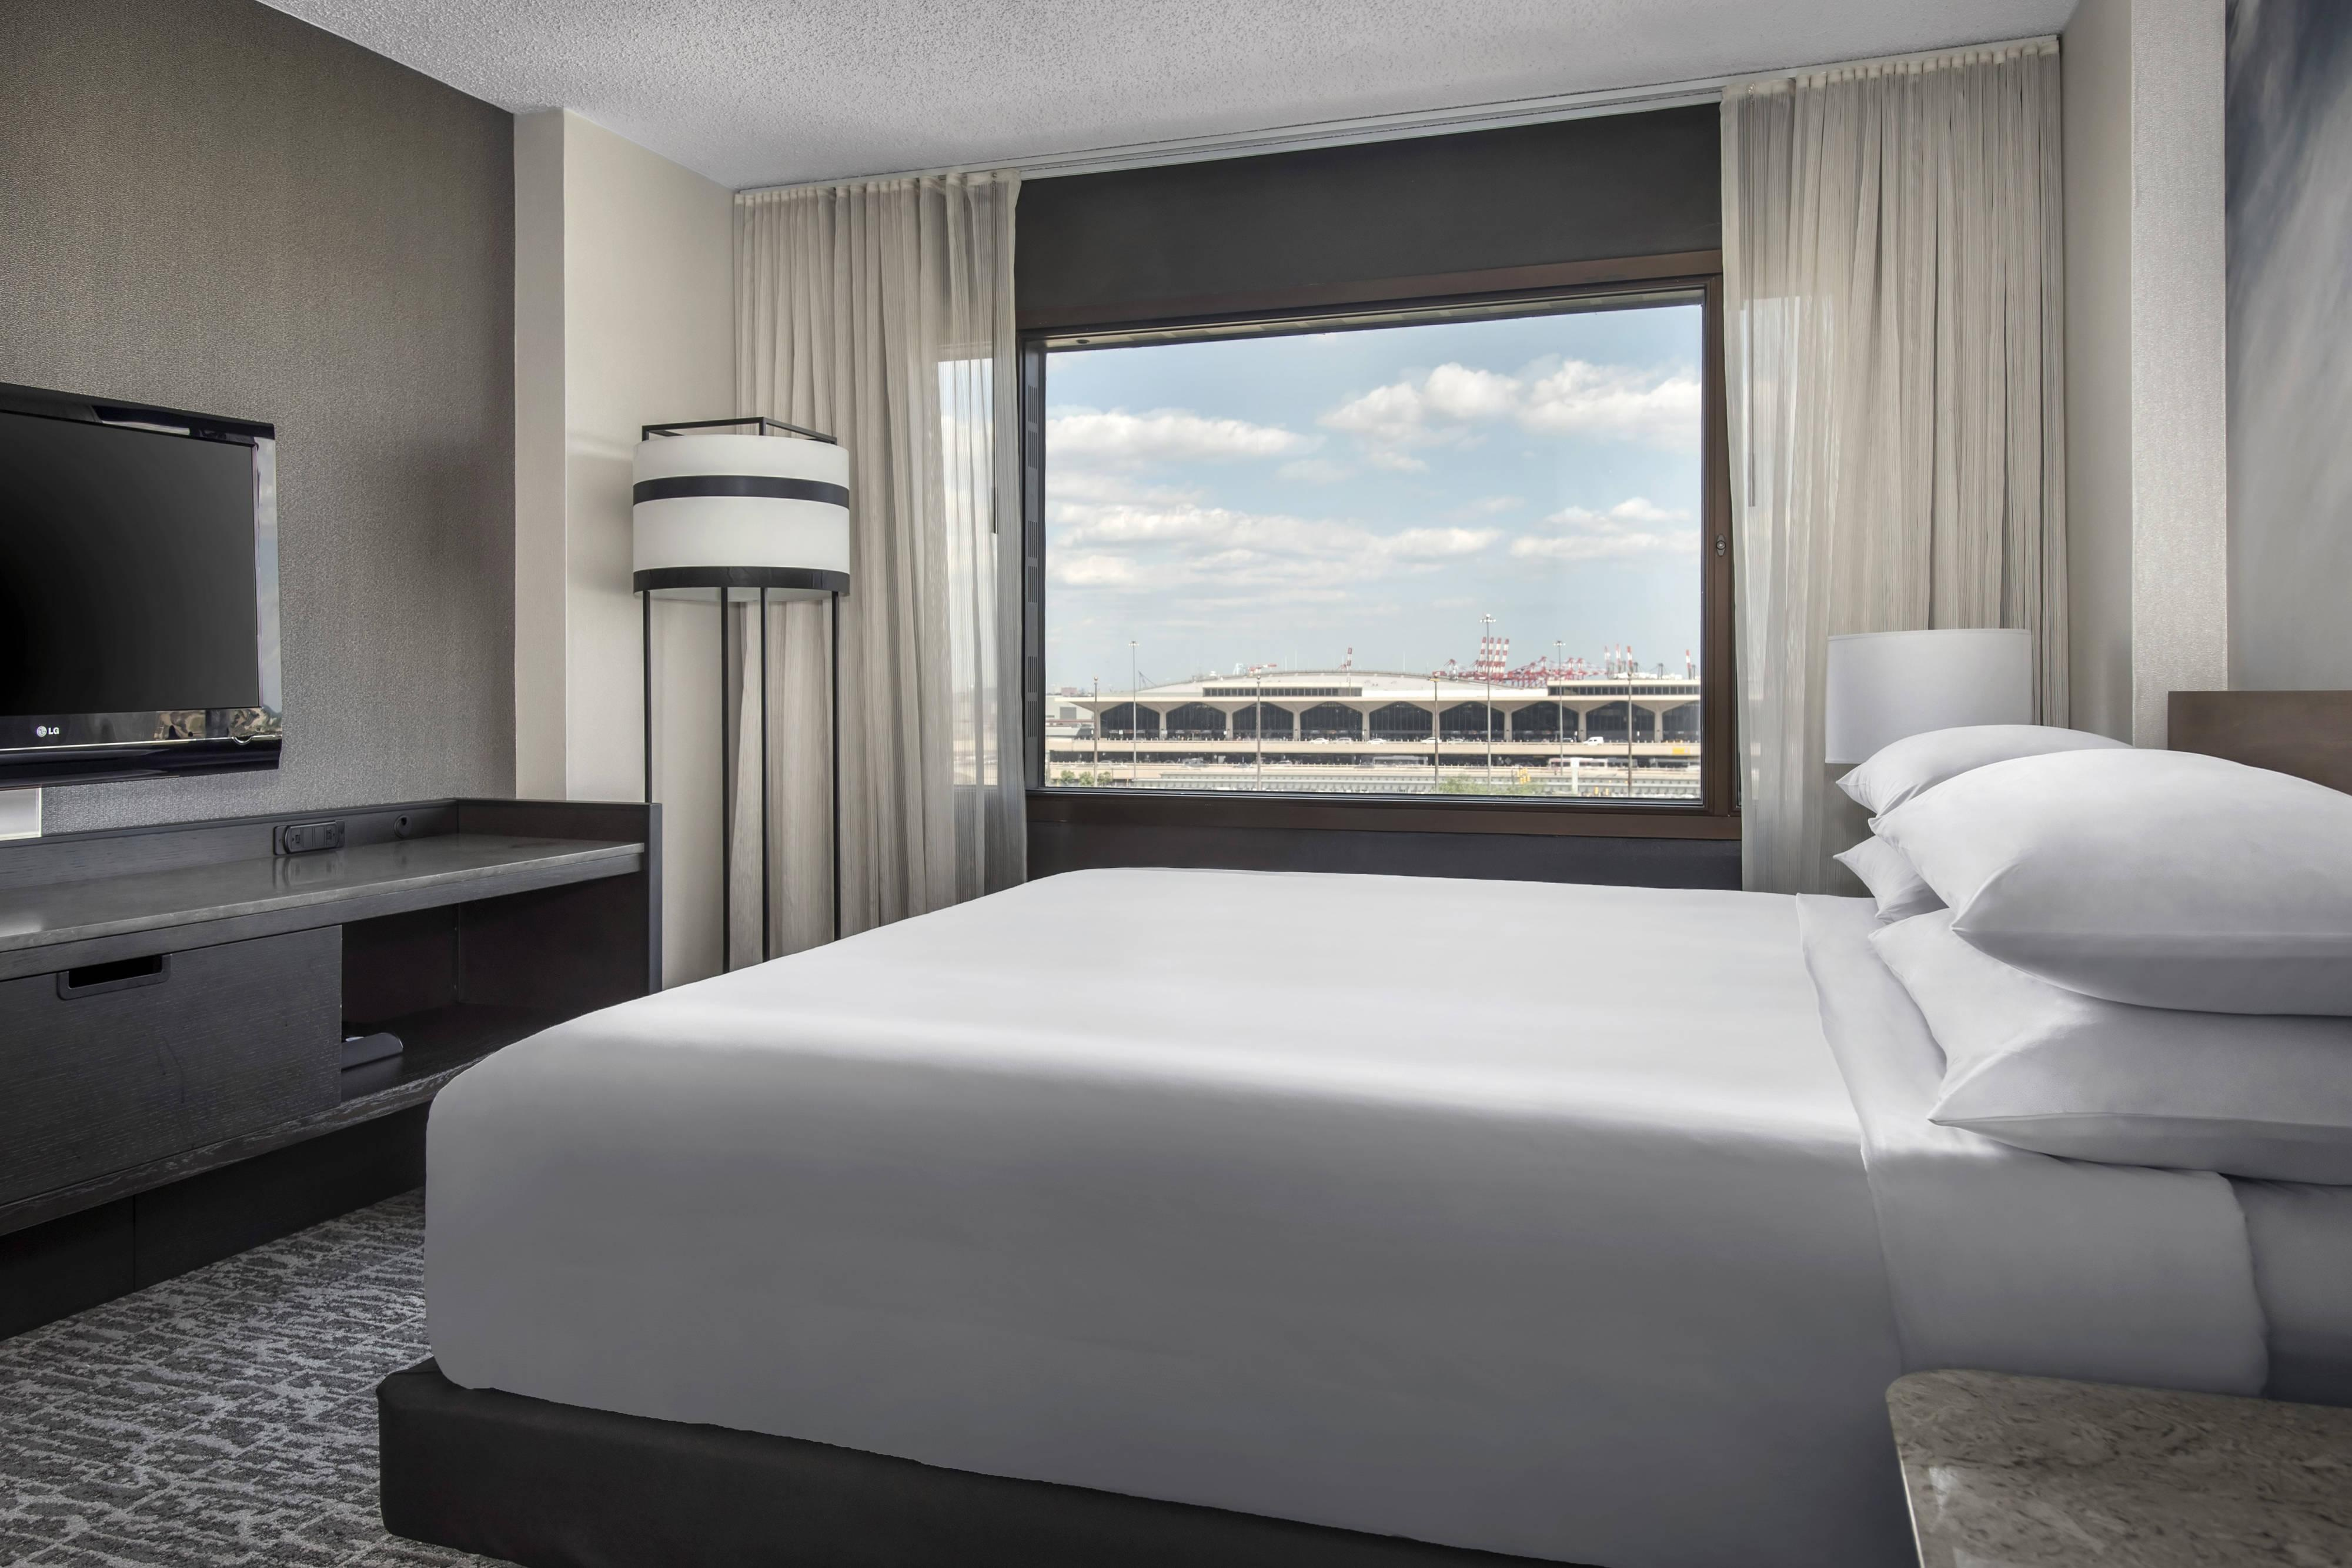 King Airport View Guest Room